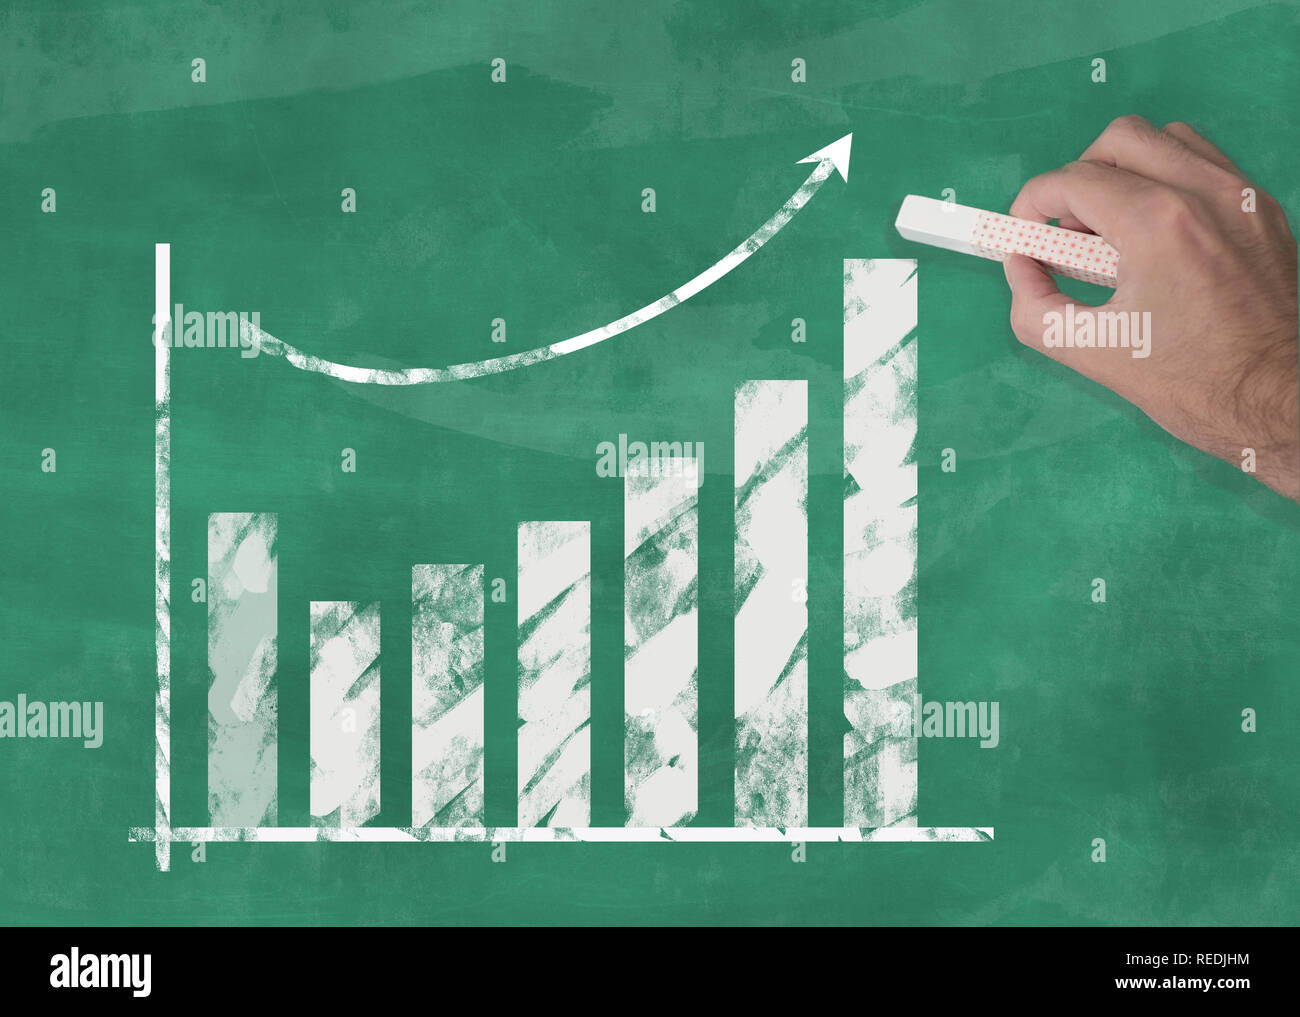 hand drawing rising curve chart on blackboard illustrating business success or rising stock prices - Stock Image